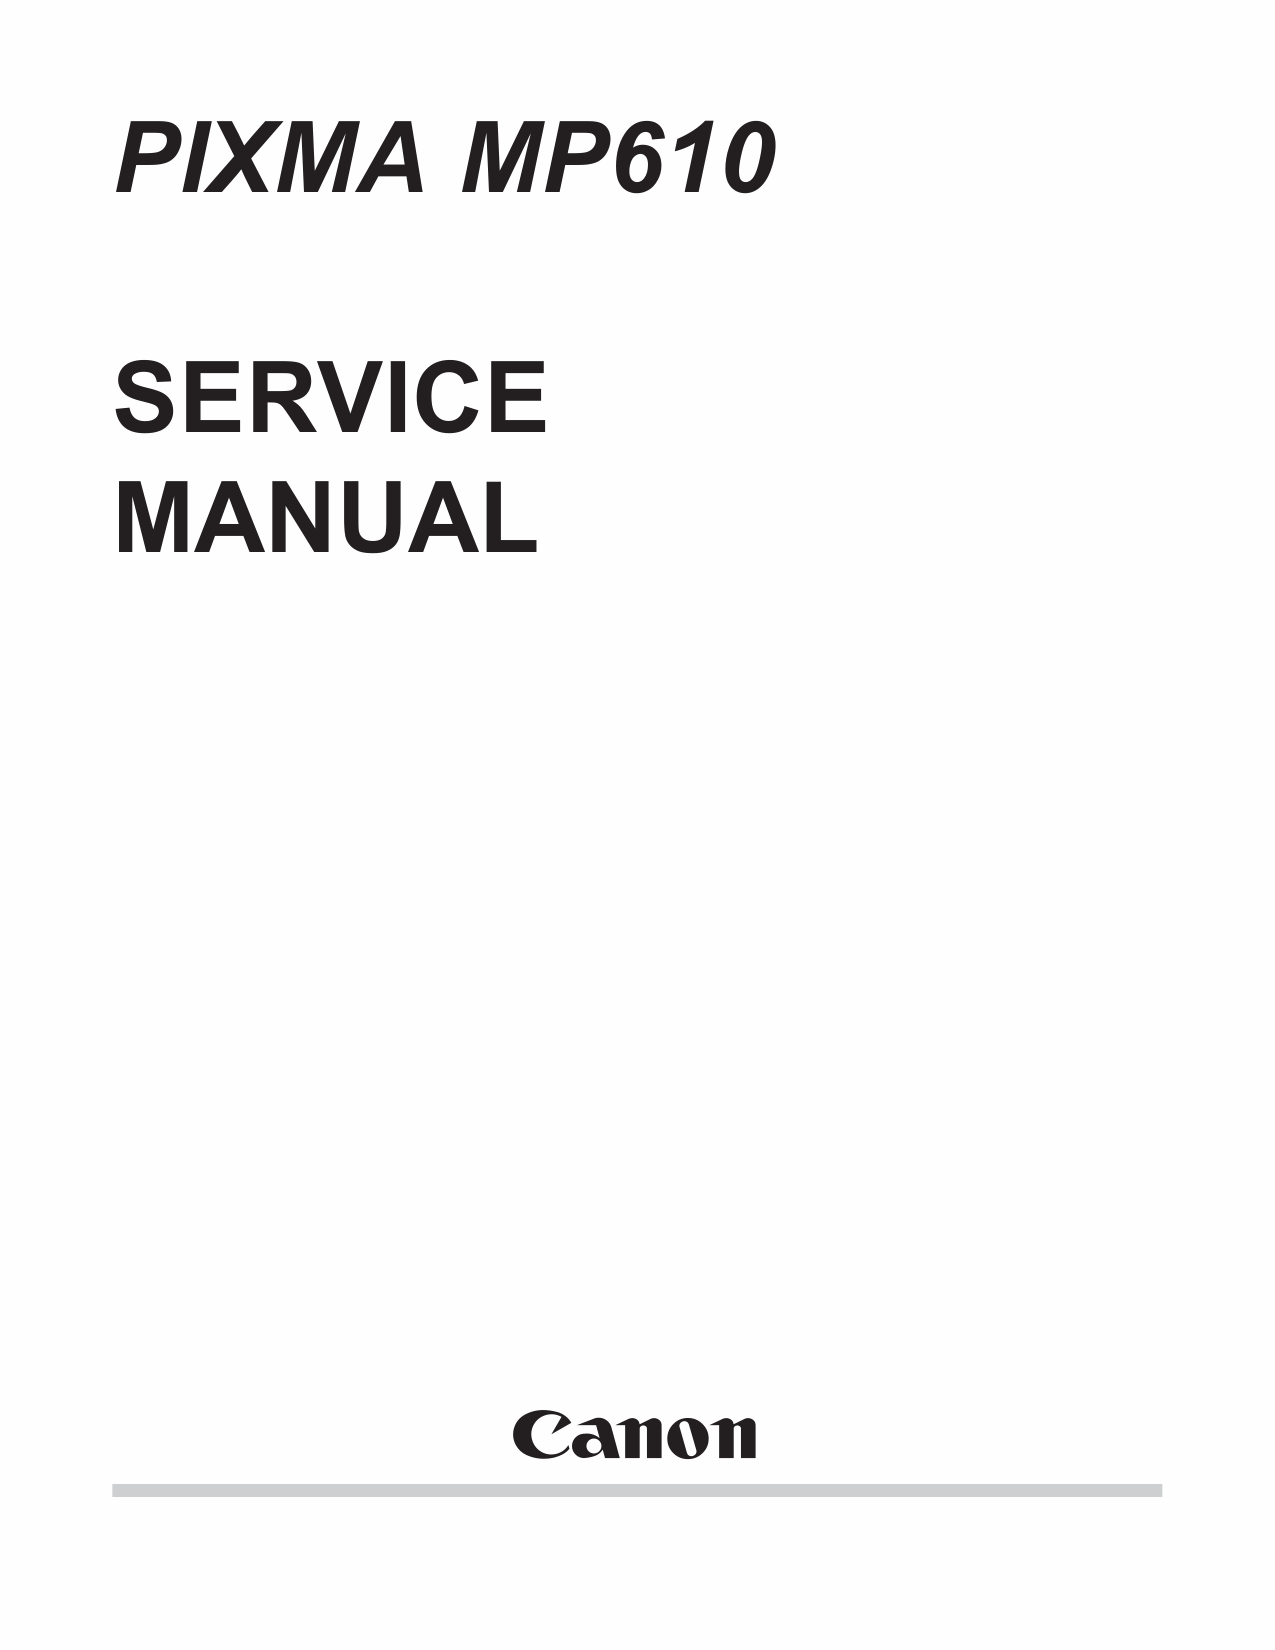 Canon PIXMA MP610 Parts and Service Manual-1